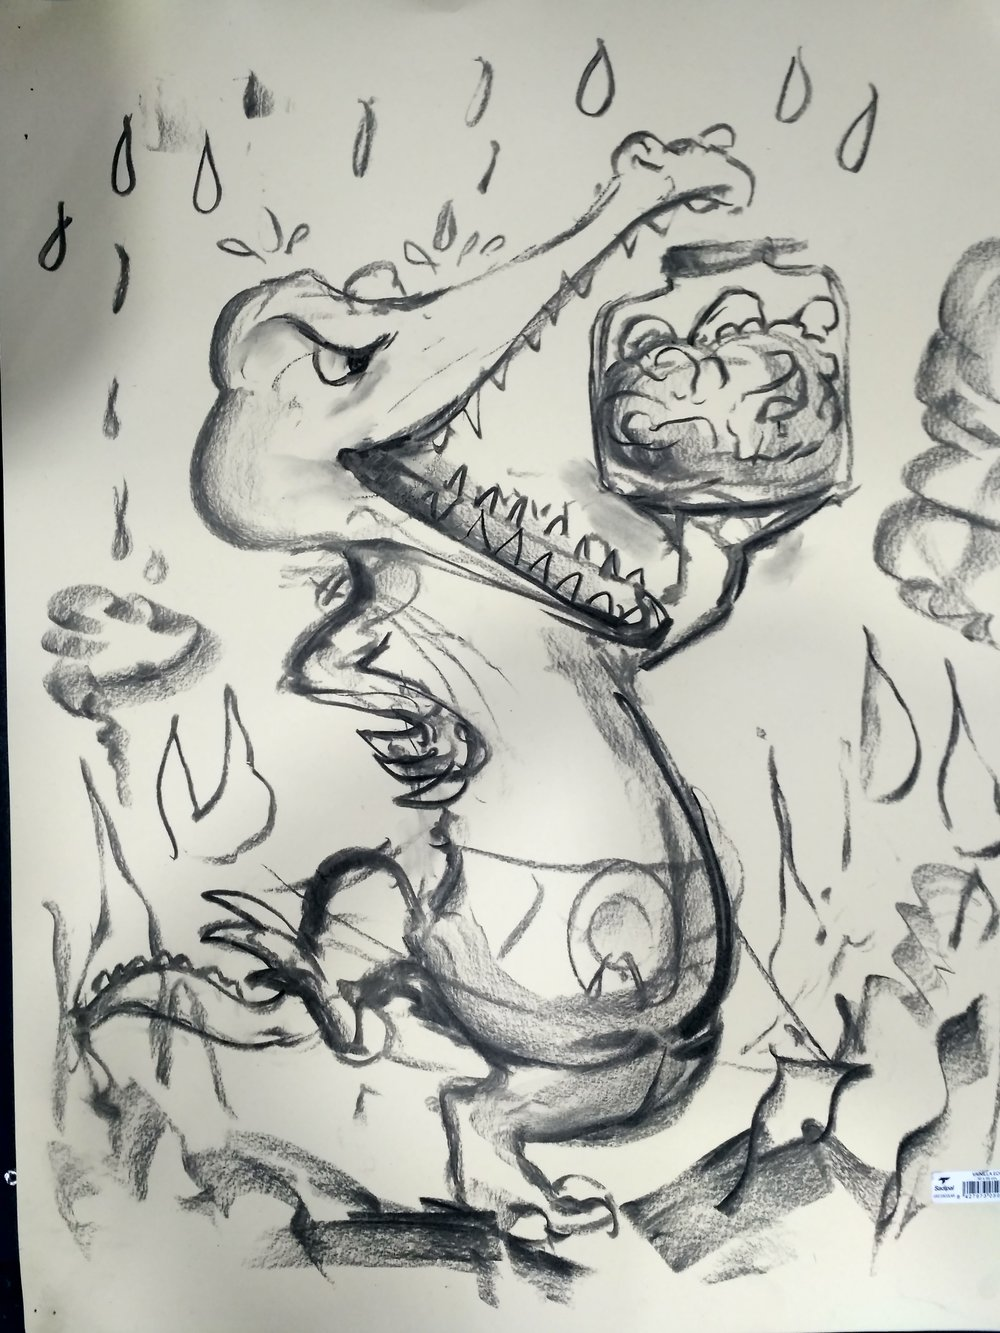 Sarah's rendition of a crocodile in a burning house being rained on while juggling a jar of brains - we think.